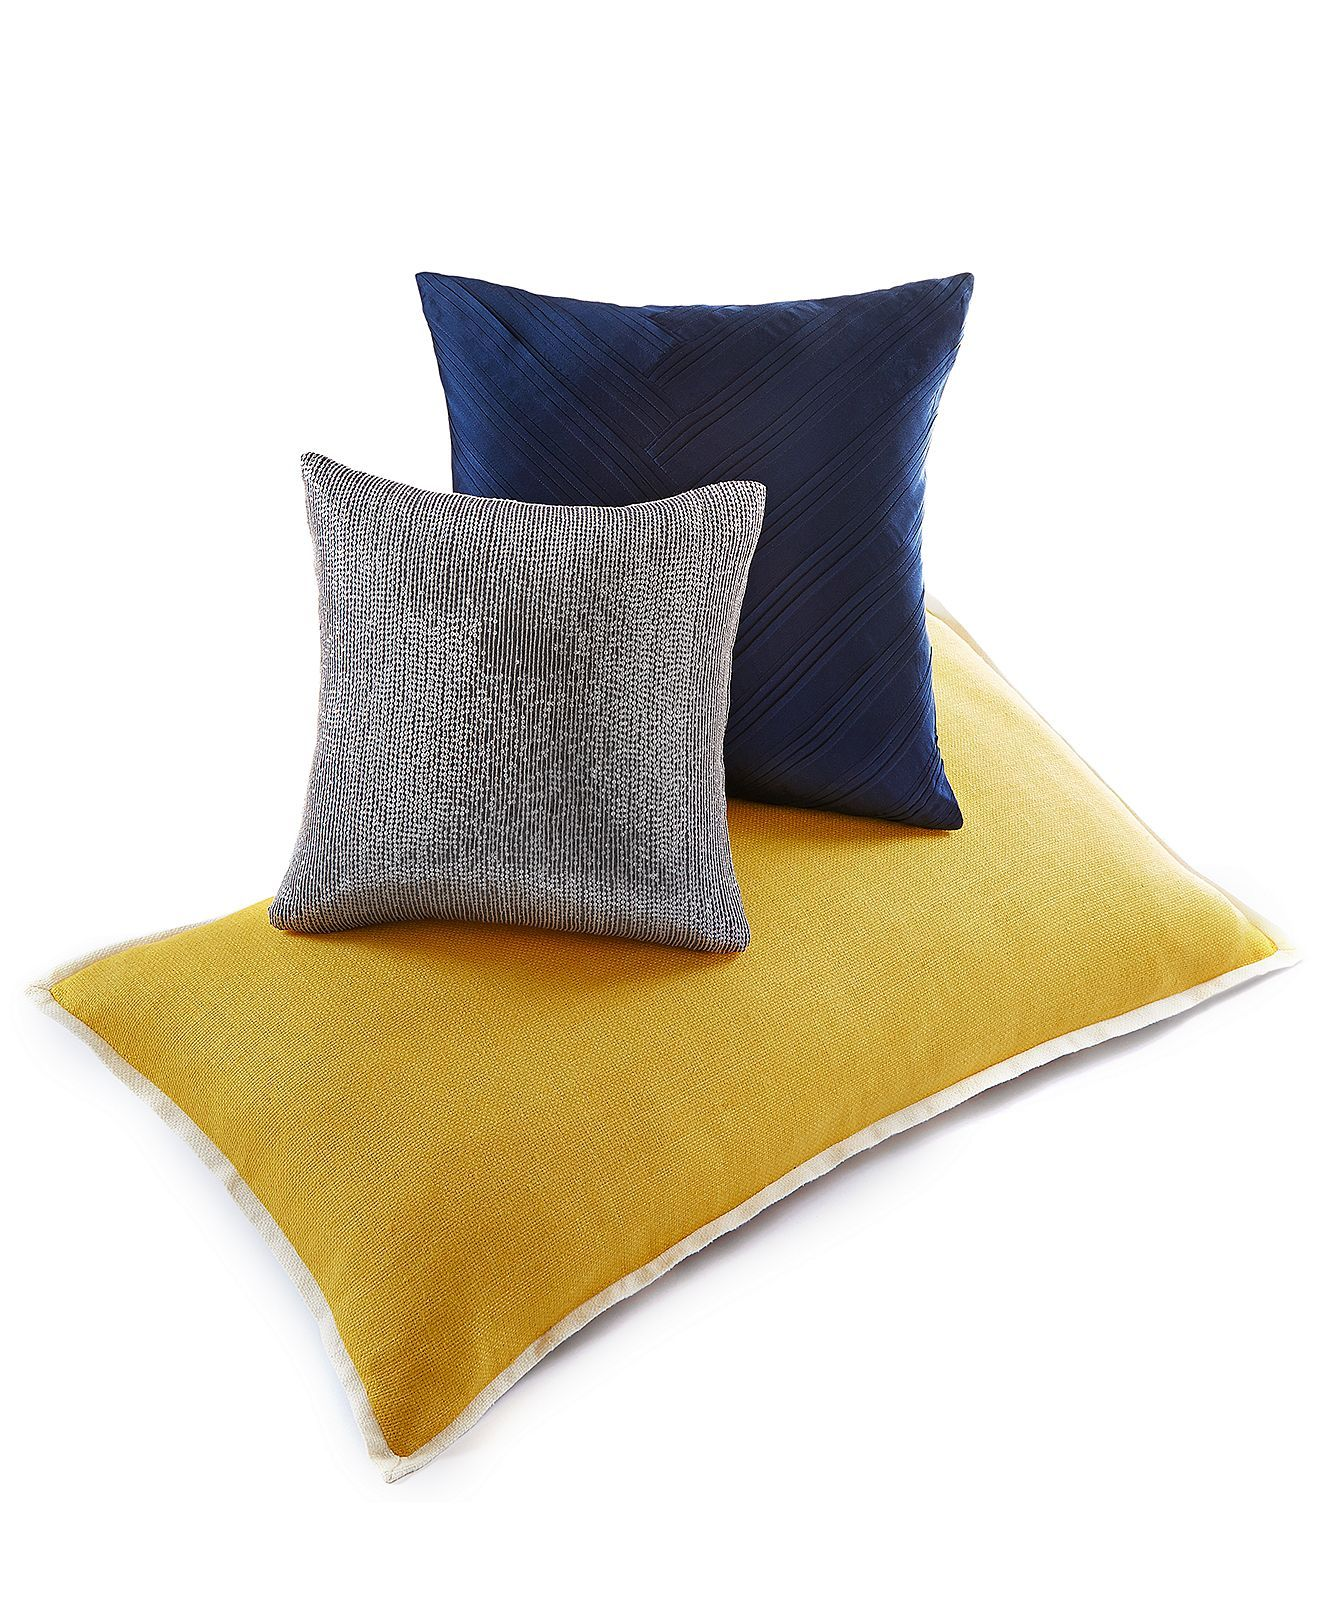 Vince Camuto Home Berlin Decorative Pillow Collection